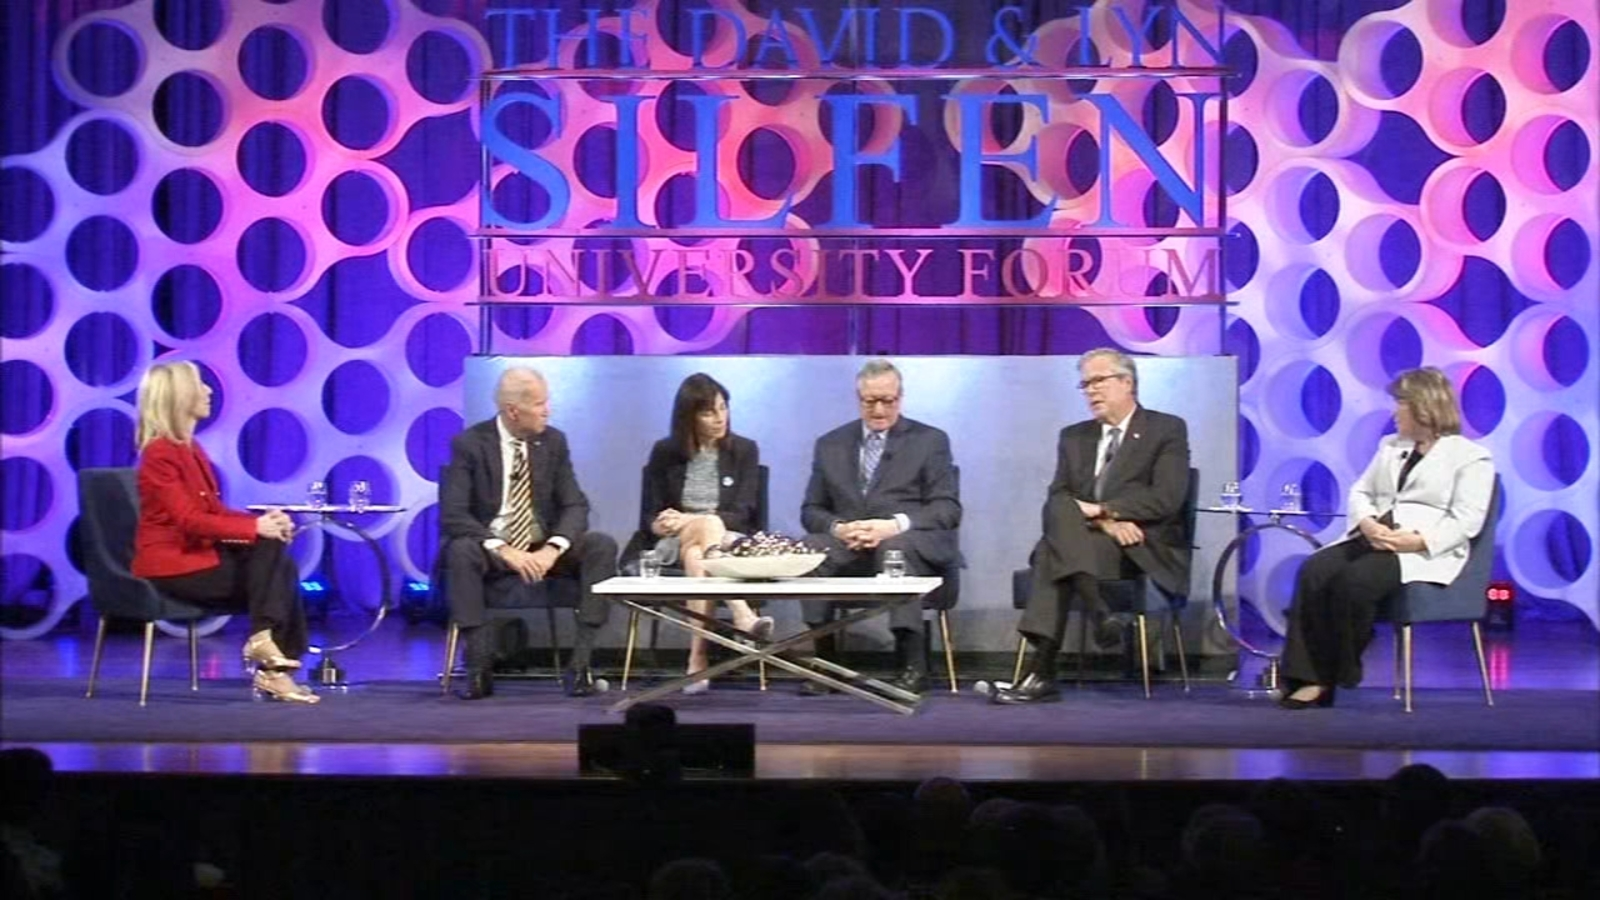 Politicians and medical experts talk opioid crisis at Penn